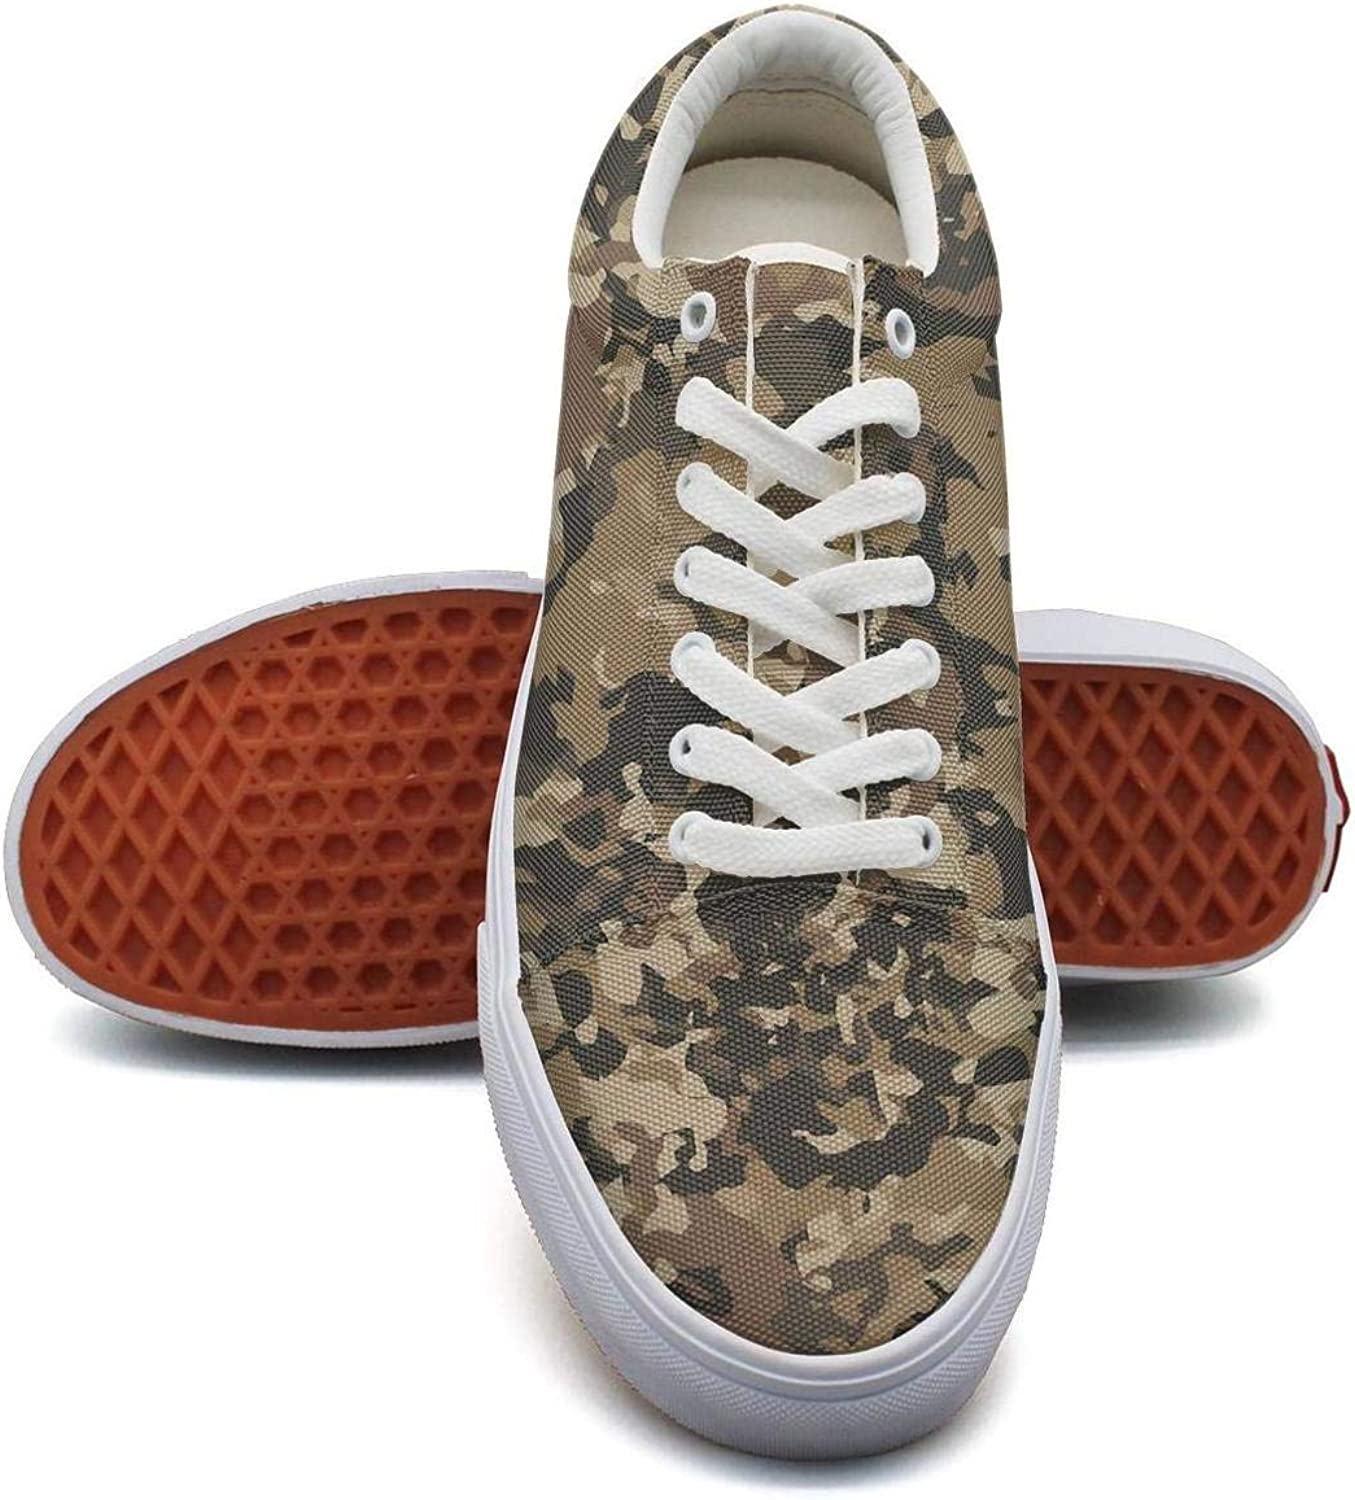 Skate Womens Sneakers Shoes Texture Leopard Fashionable Print Slip-on for Women Classic Lightweight Canvas Sneakers